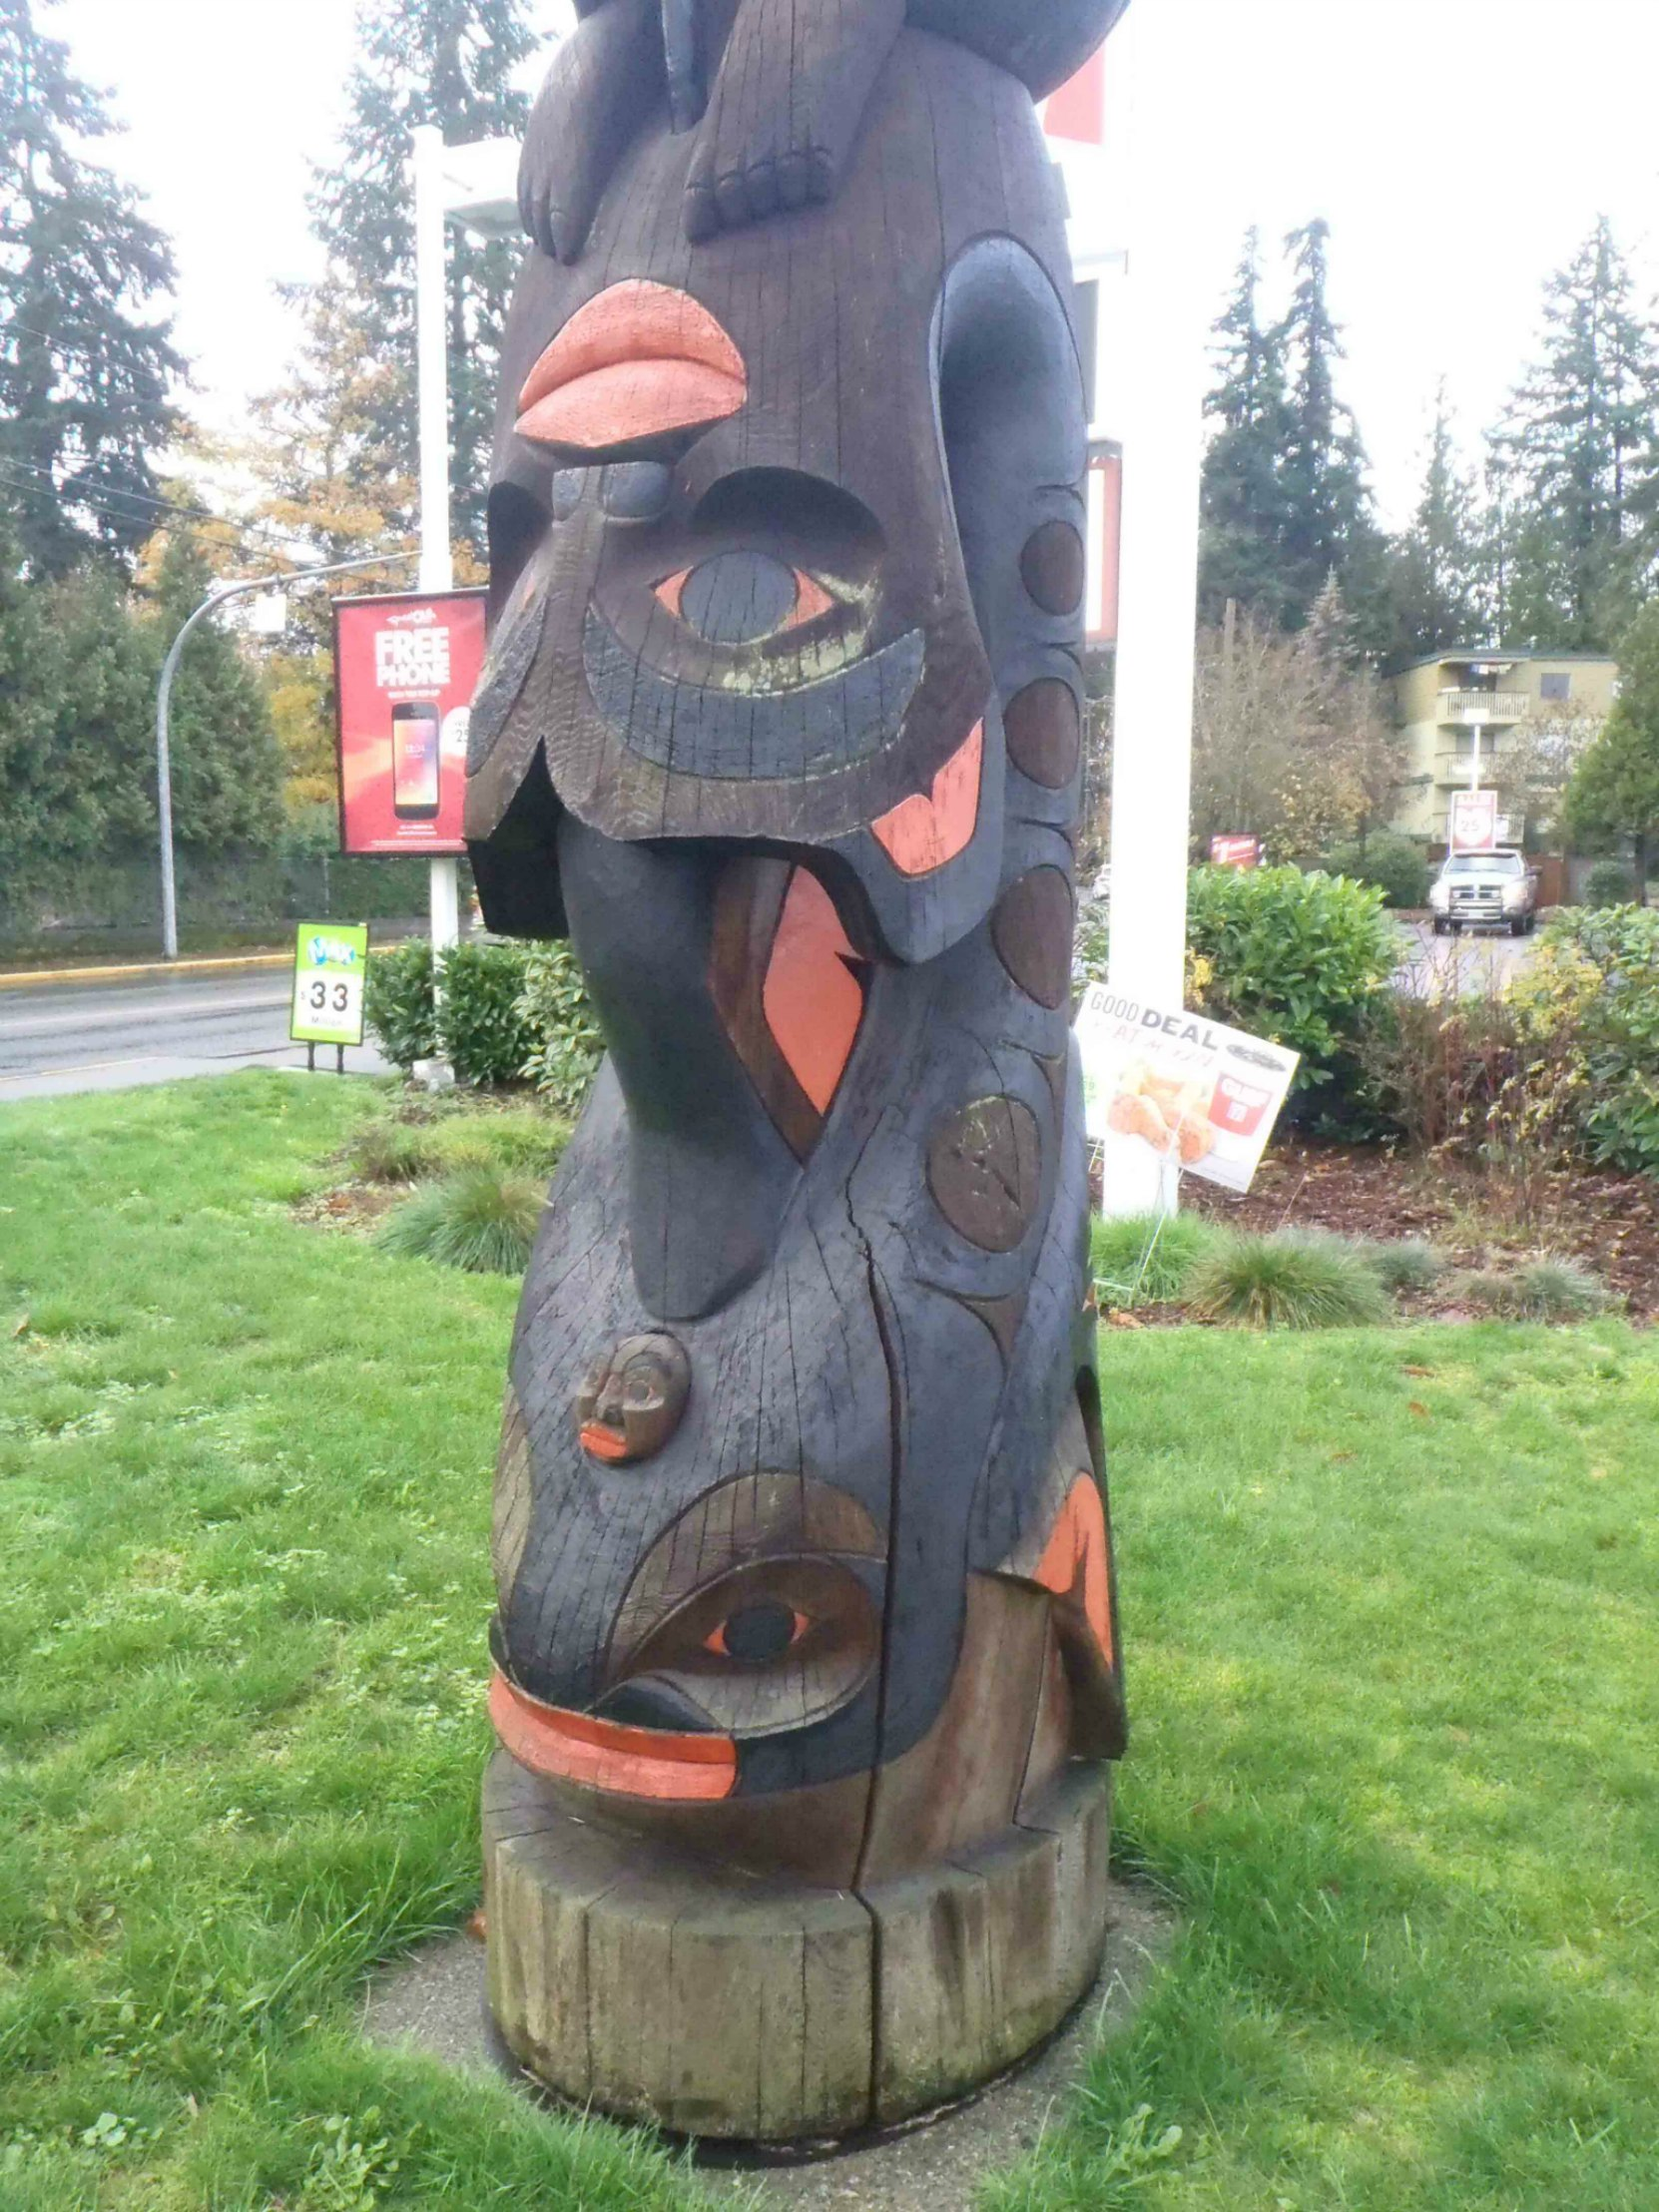 Fisherman's Pole, Killer Whale figure, Government Street at College Street, Duncan, B.C.